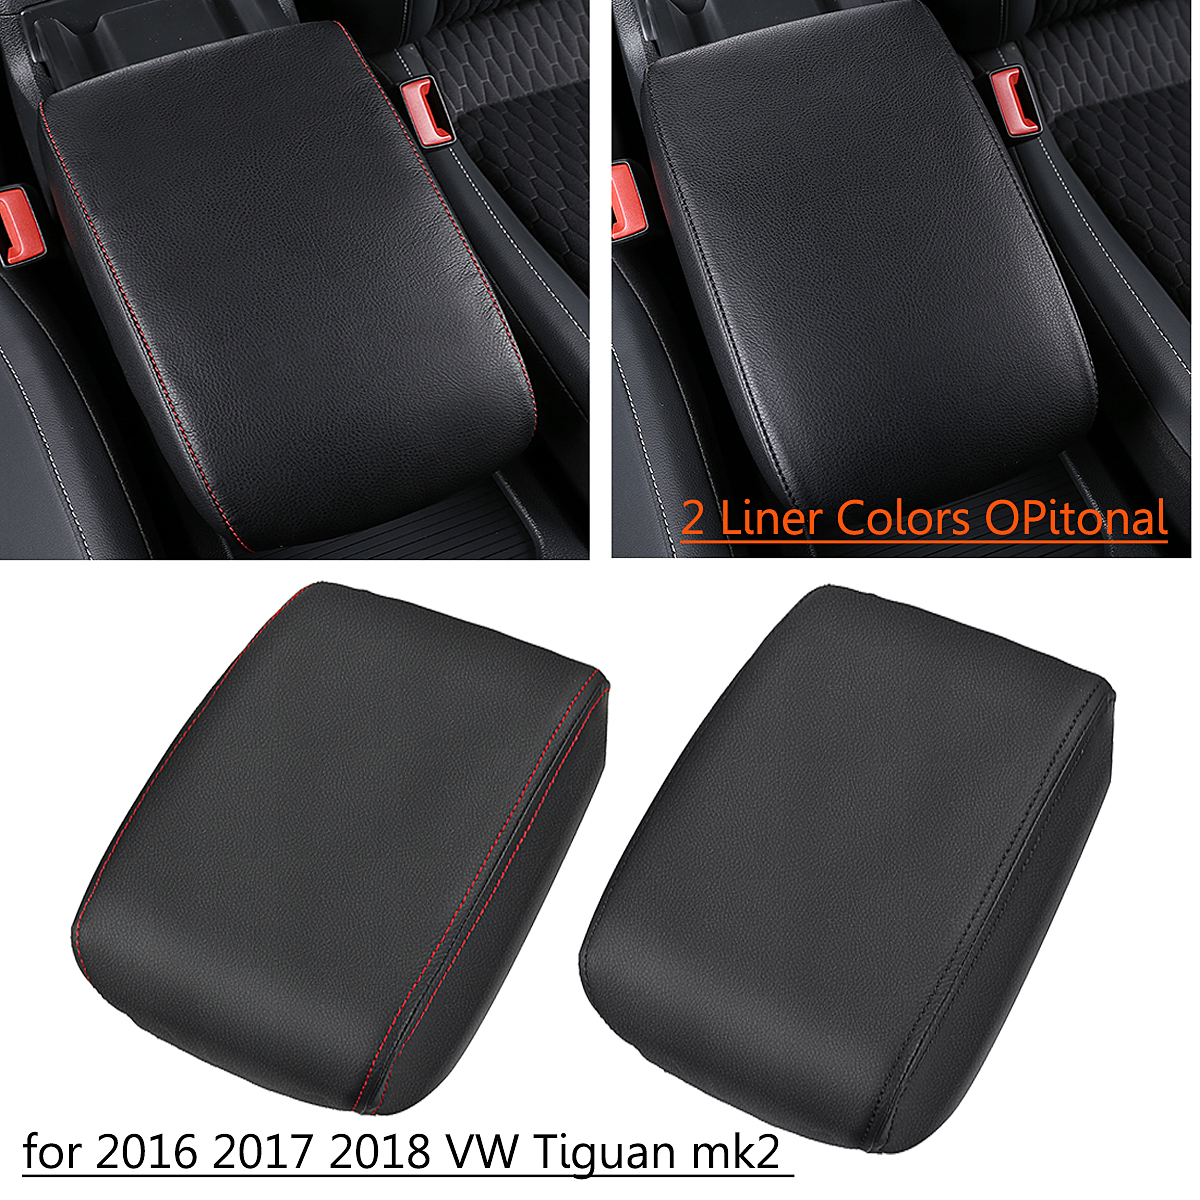 Car Center Console Seat Armrest Box Pads Cover PU Leather for VW Tiguan MK2 2016 2017 2018 Car Styling Accessories